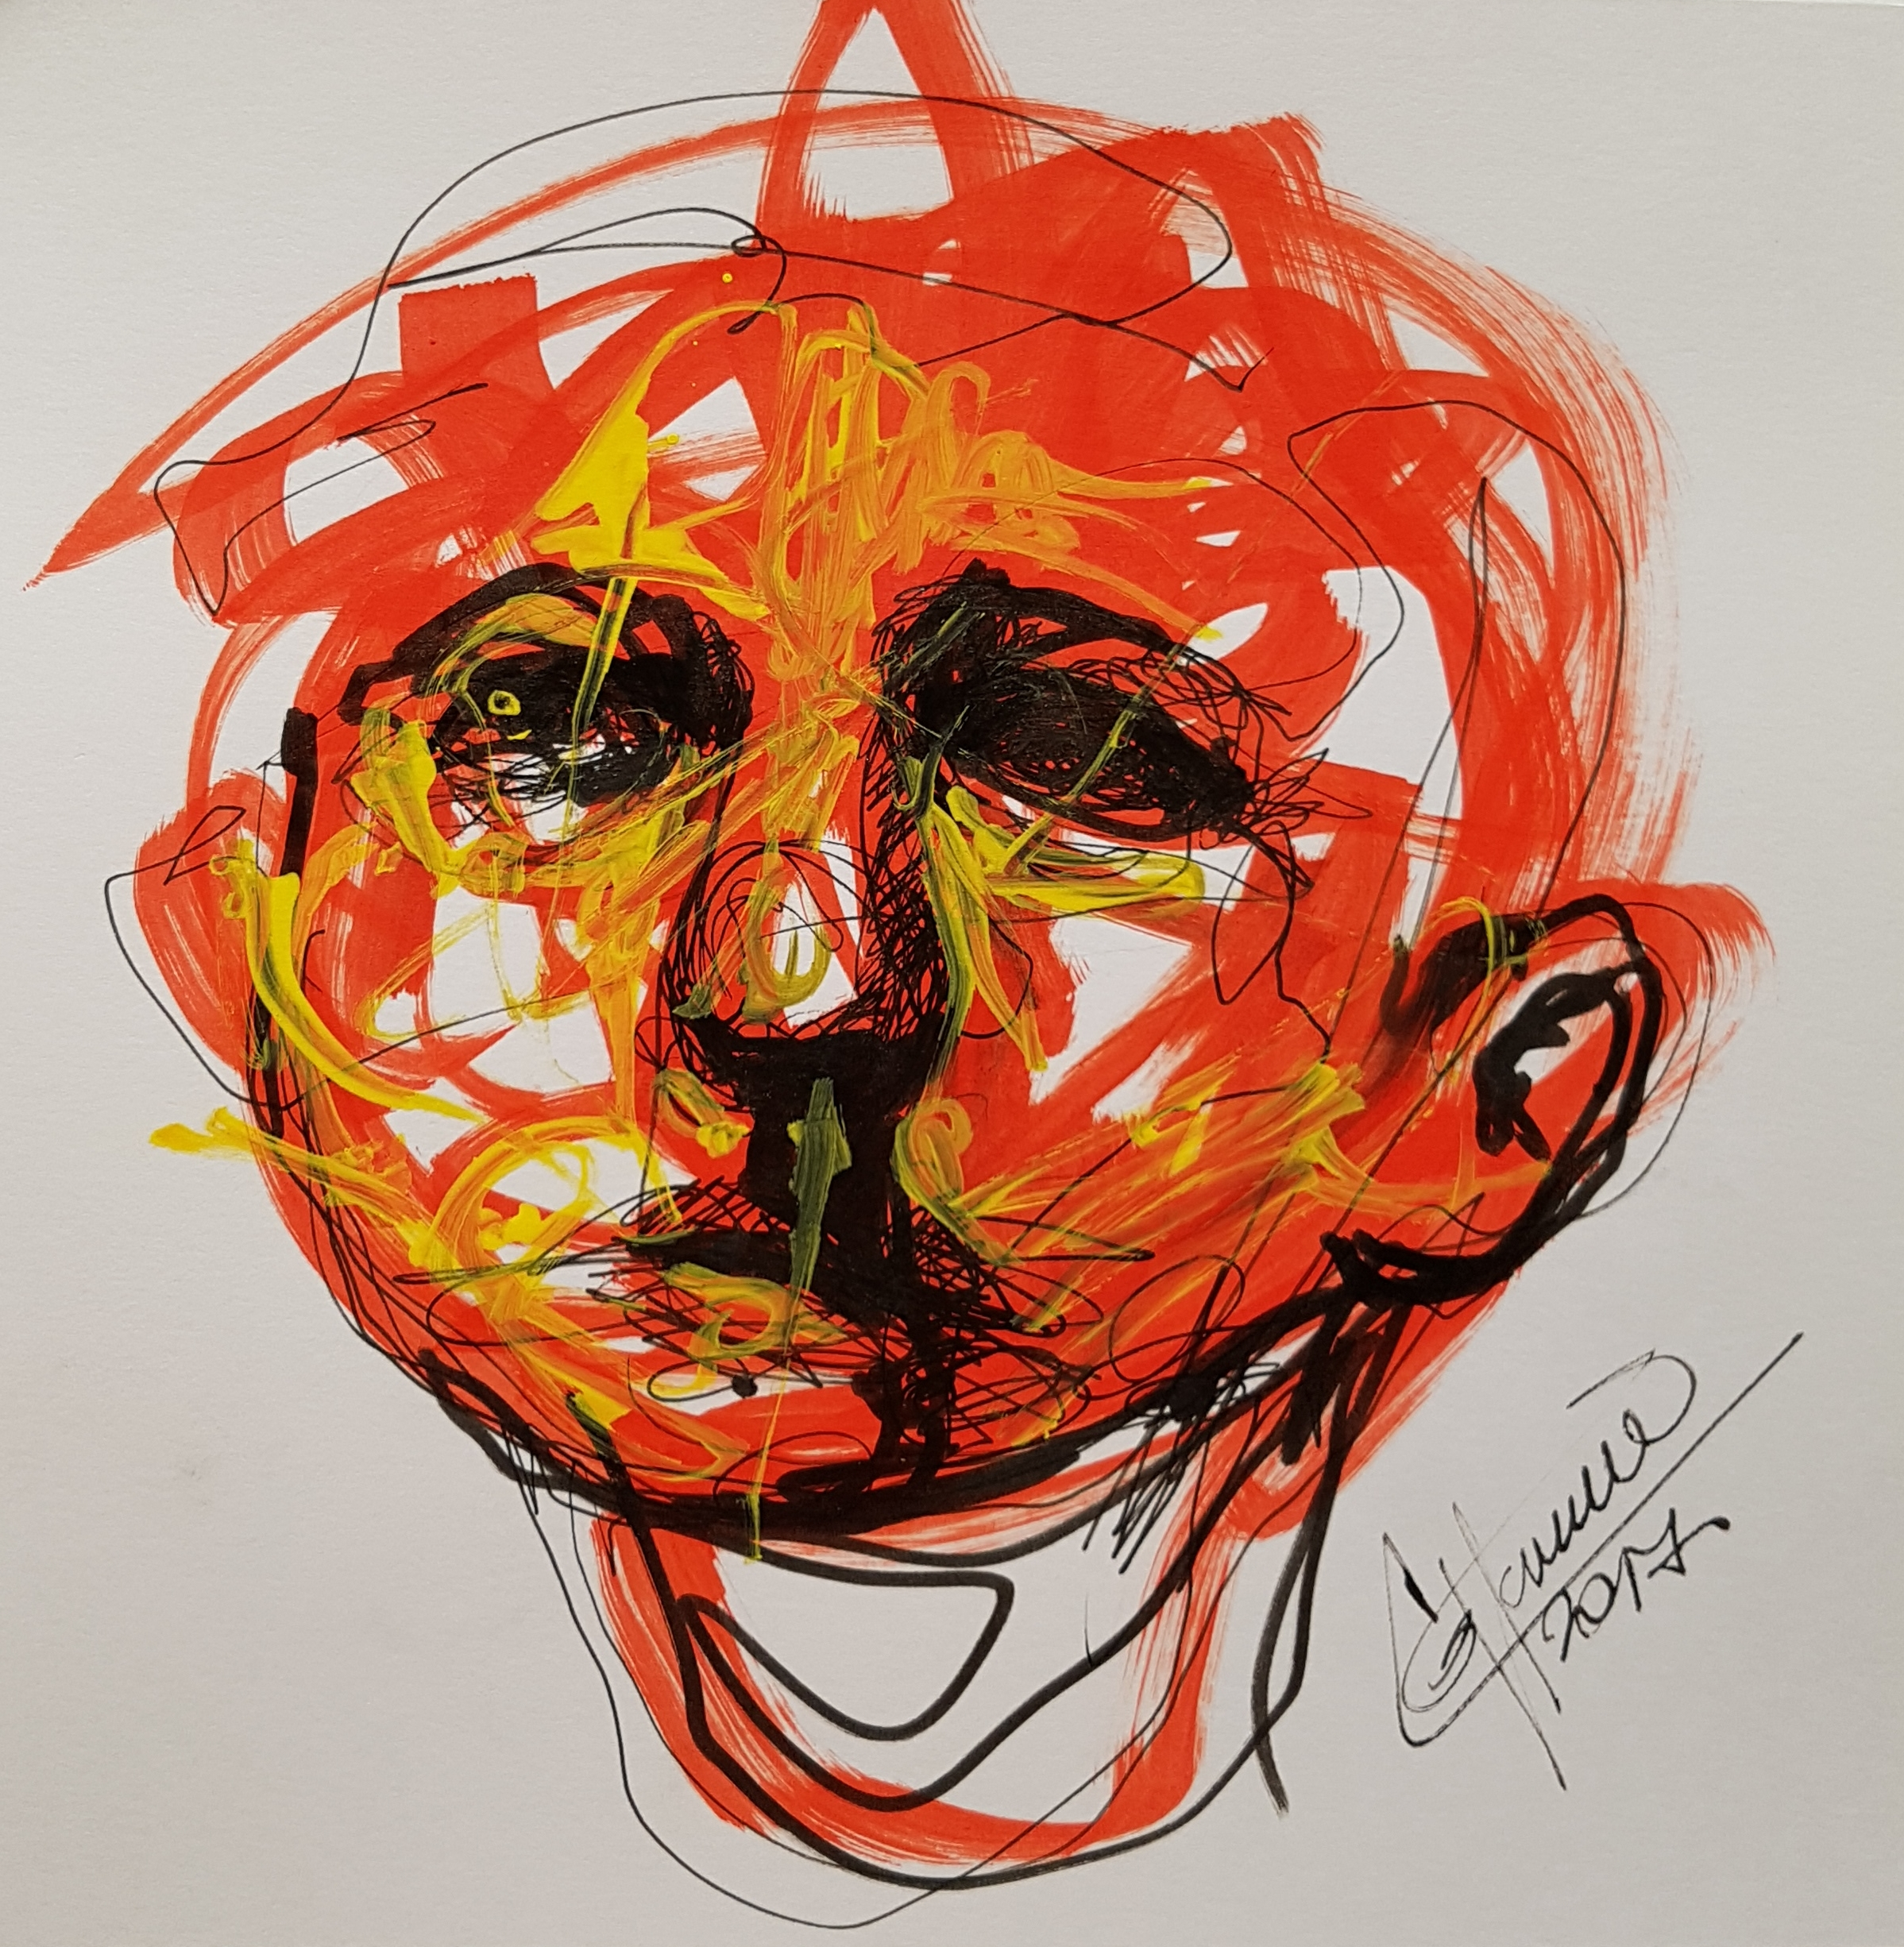 face looking up, sketch on marker red and yellow